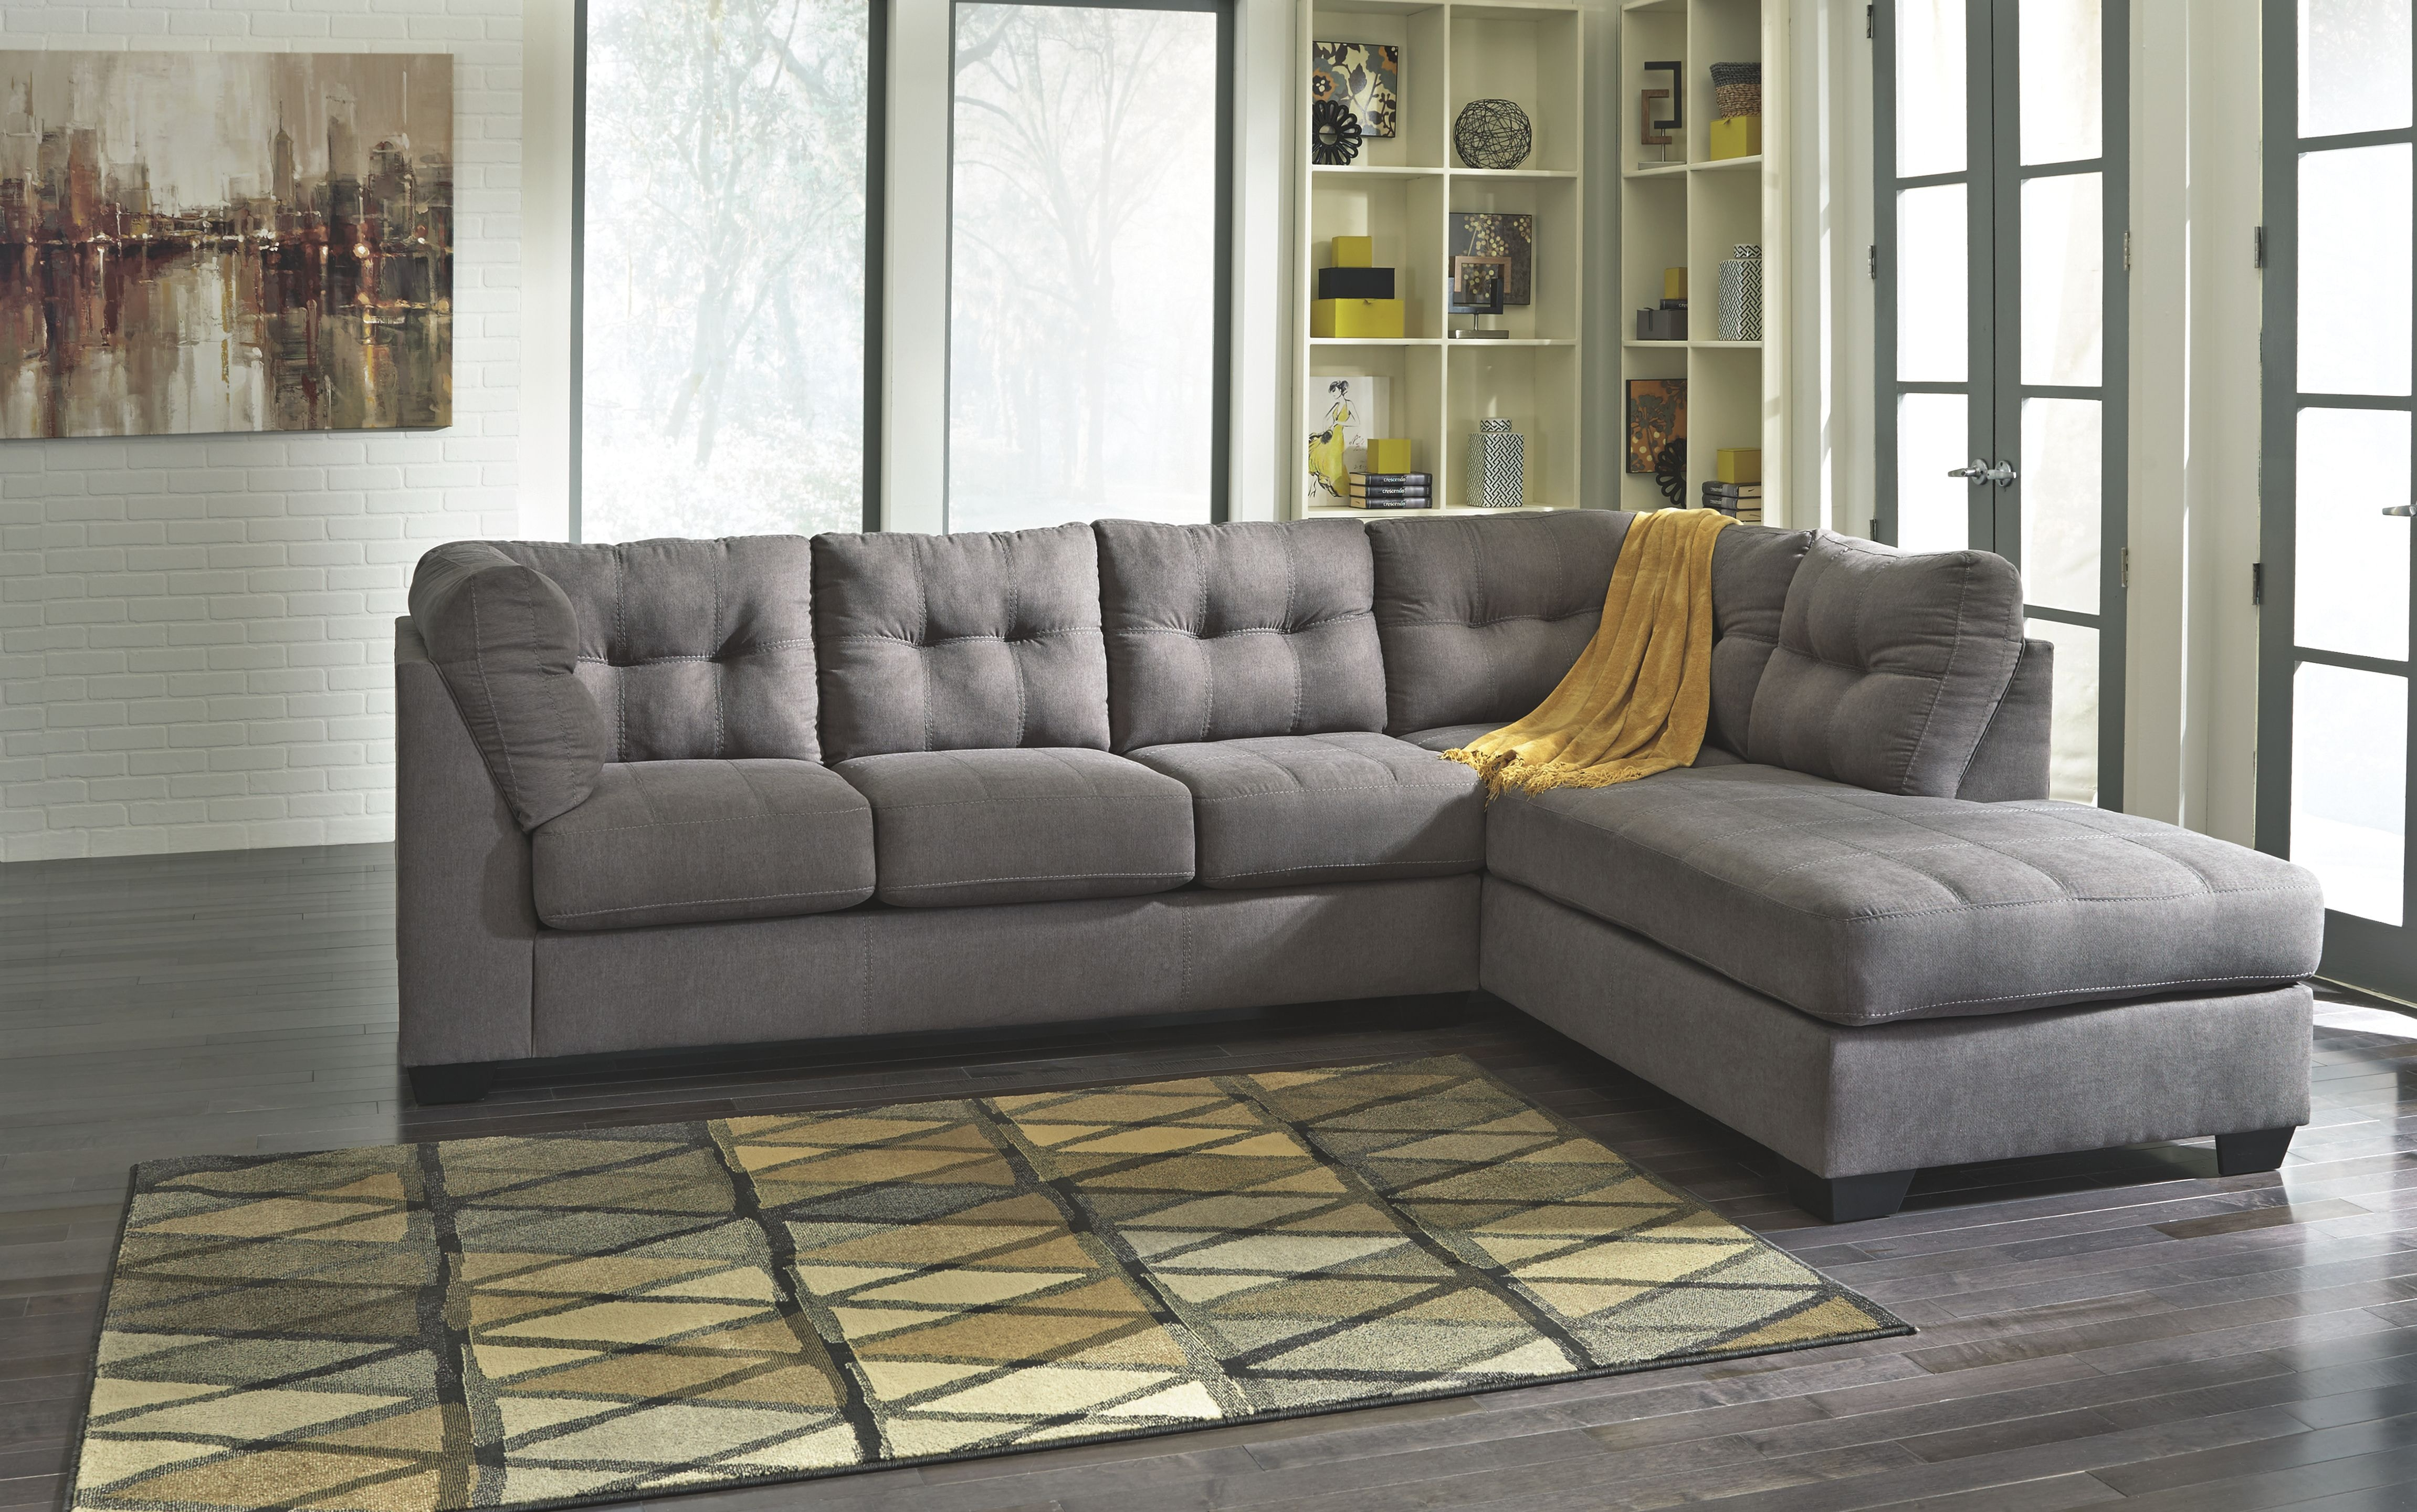 Signature Design by Ashley Living Room RAF Corner Chaise 4520017